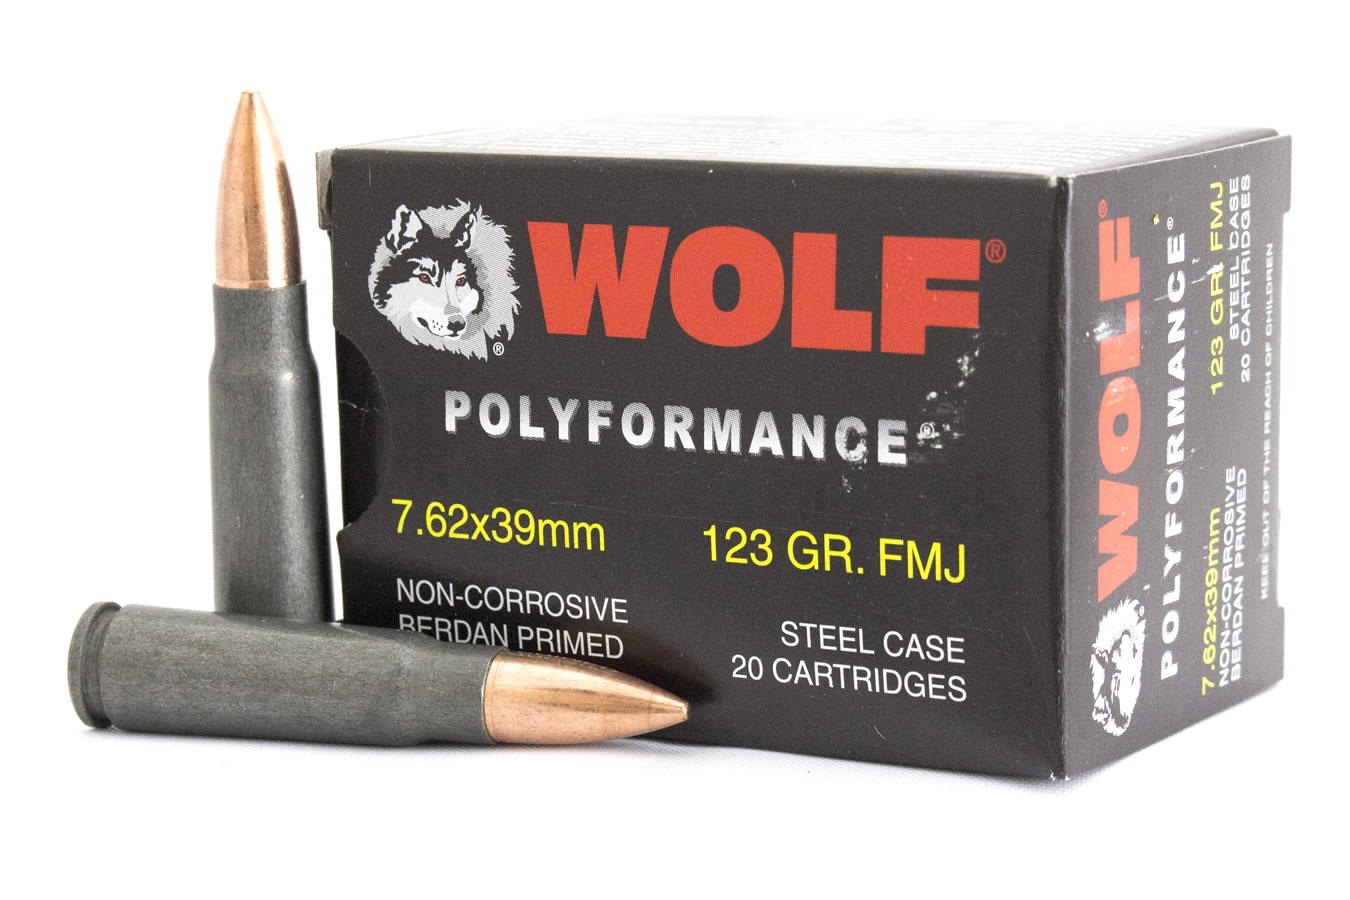 7.62X39MM 123 GR FMJ STEEL CASE